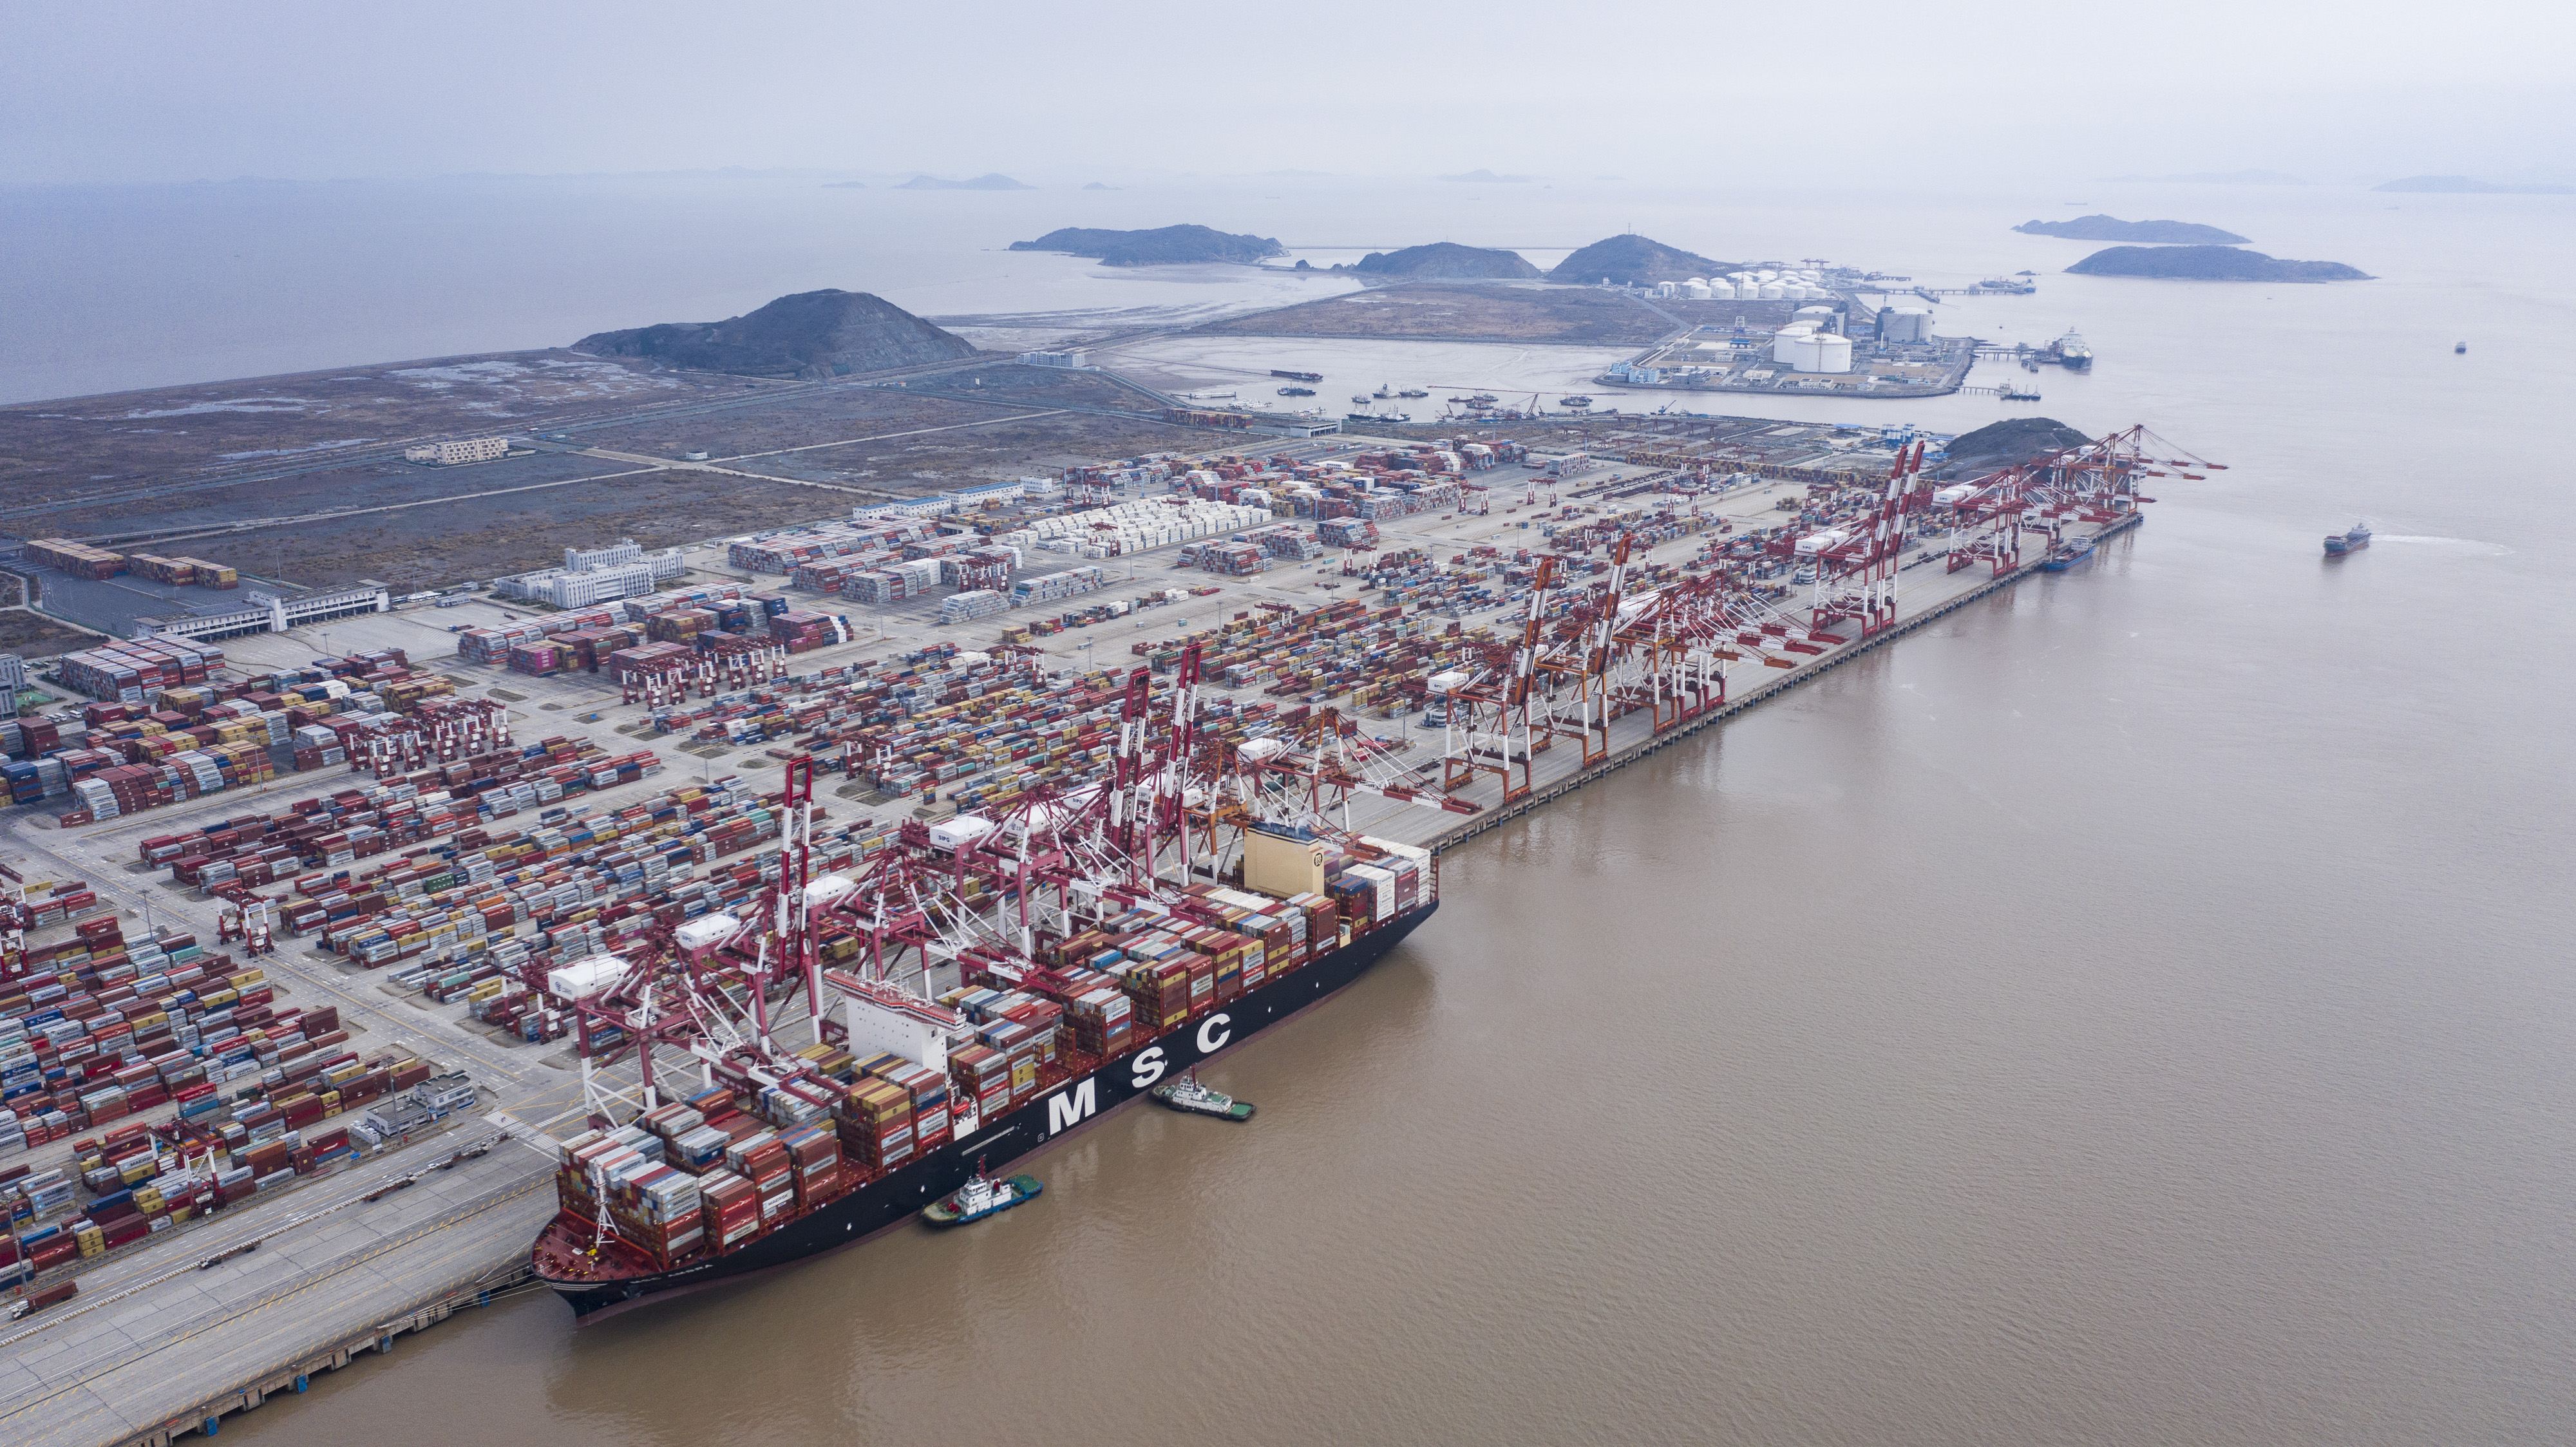 It would cost $1 trillion to move global supply chains out of China—but the long-term gains could be worth it thumbnail